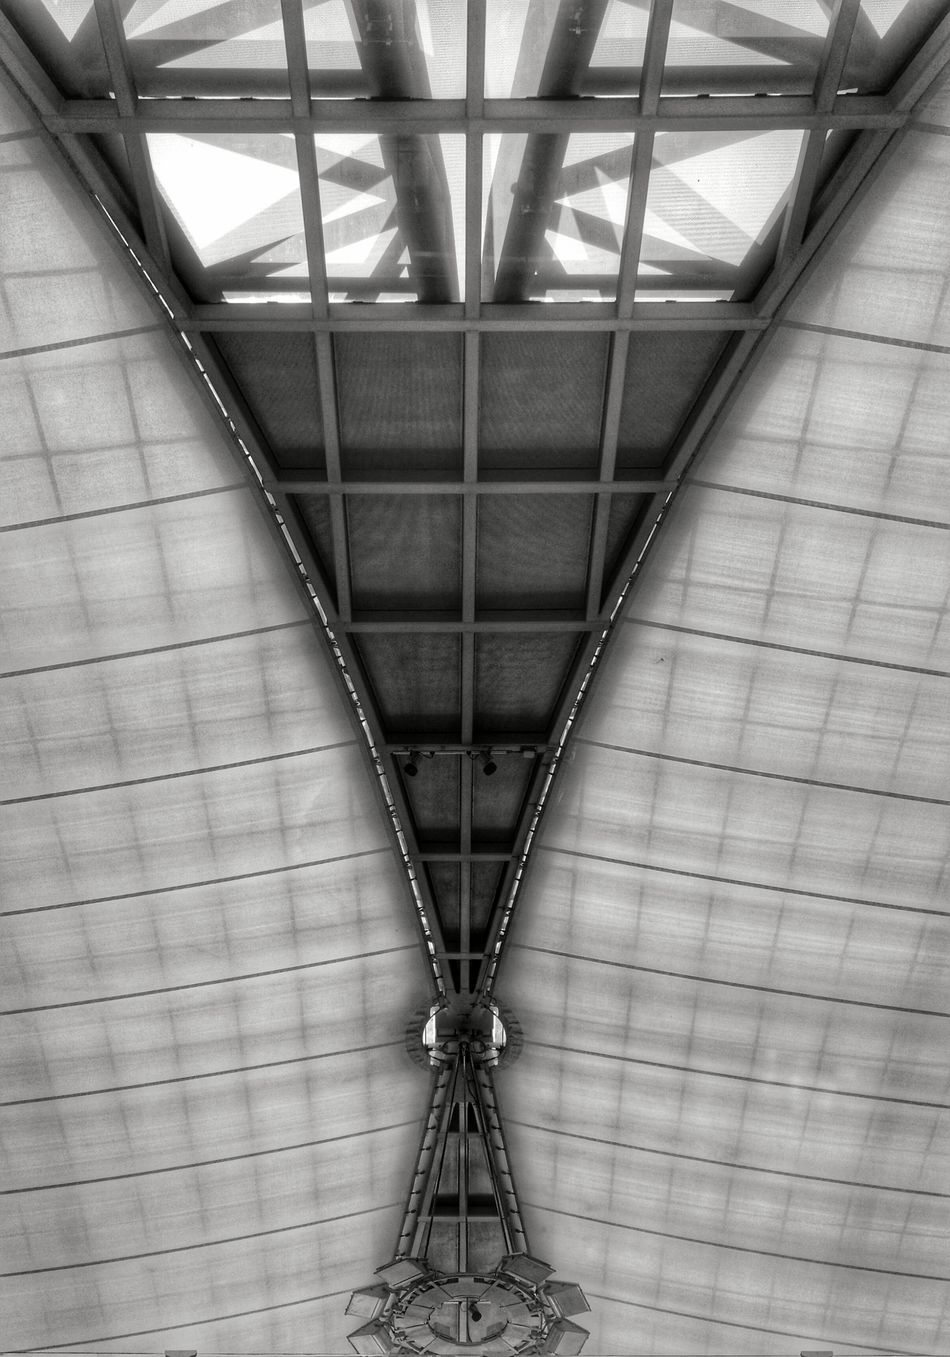 EyeEmBestEdits EyeEmbestshots Eye4photography  EyeEm Best Edits EyeEm Gallery EyeEm Best Shots Architectural Detail Eyeemphotography Architecturelovers Architectural Feature Arch Architecture EyeEm Best Shots - Architecture Architectureporn Structure Bnw Rsa_bnw Rsa_architecture Architecture_bw Architectural Column ArchiTexture Architektur Archilovers Architecture_collection Architecture Details Art Is Everywhere